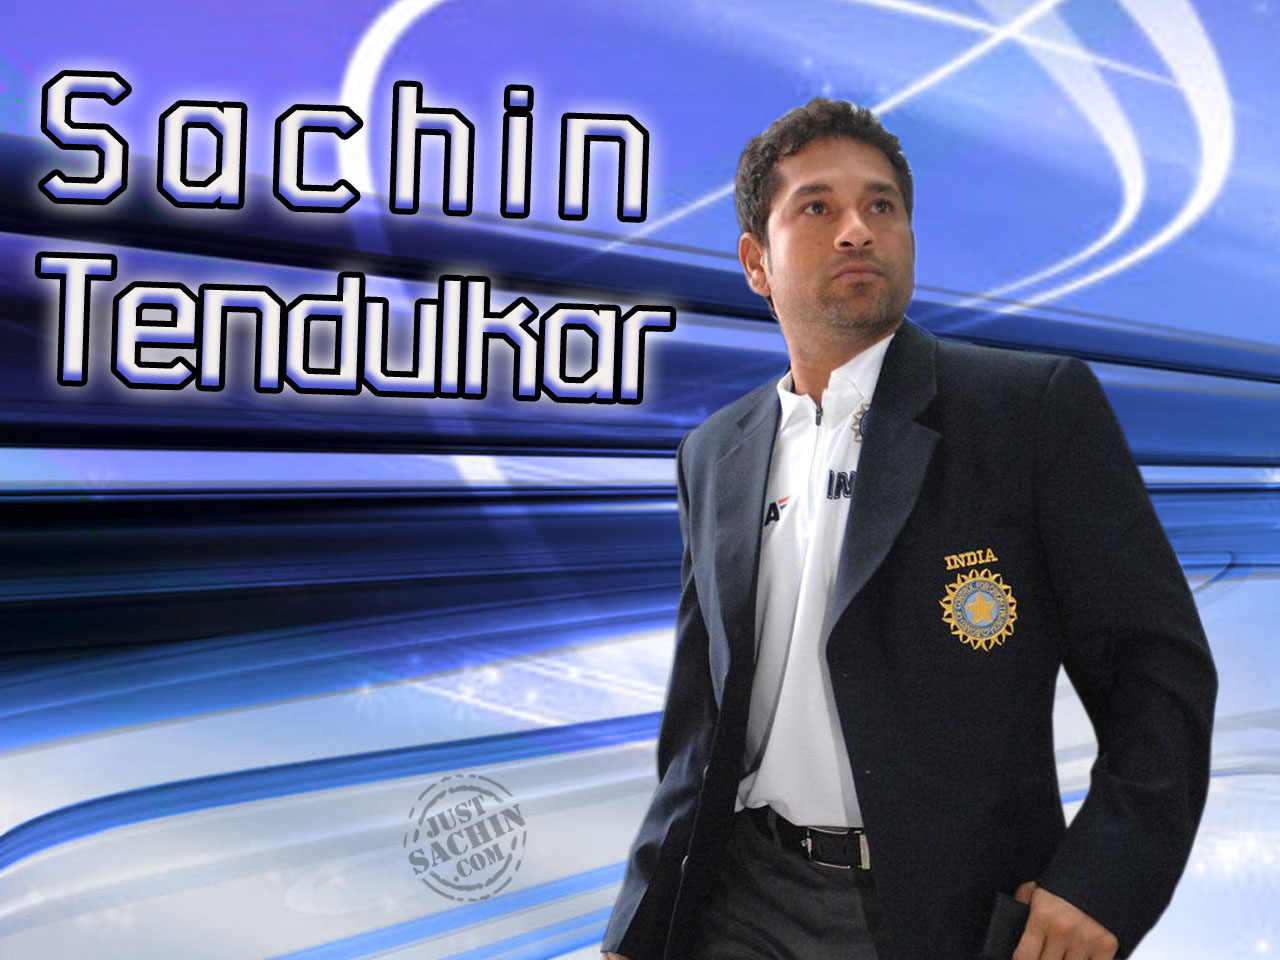 http://2.bp.blogspot.com/_UPuIF8VHaHY/TUQ0mm7fH0I/AAAAAAAAAG8/IT_ZPFr8-j4/s1600/SACHIN-TENDULKAR-WALLPAPER-9.jpg